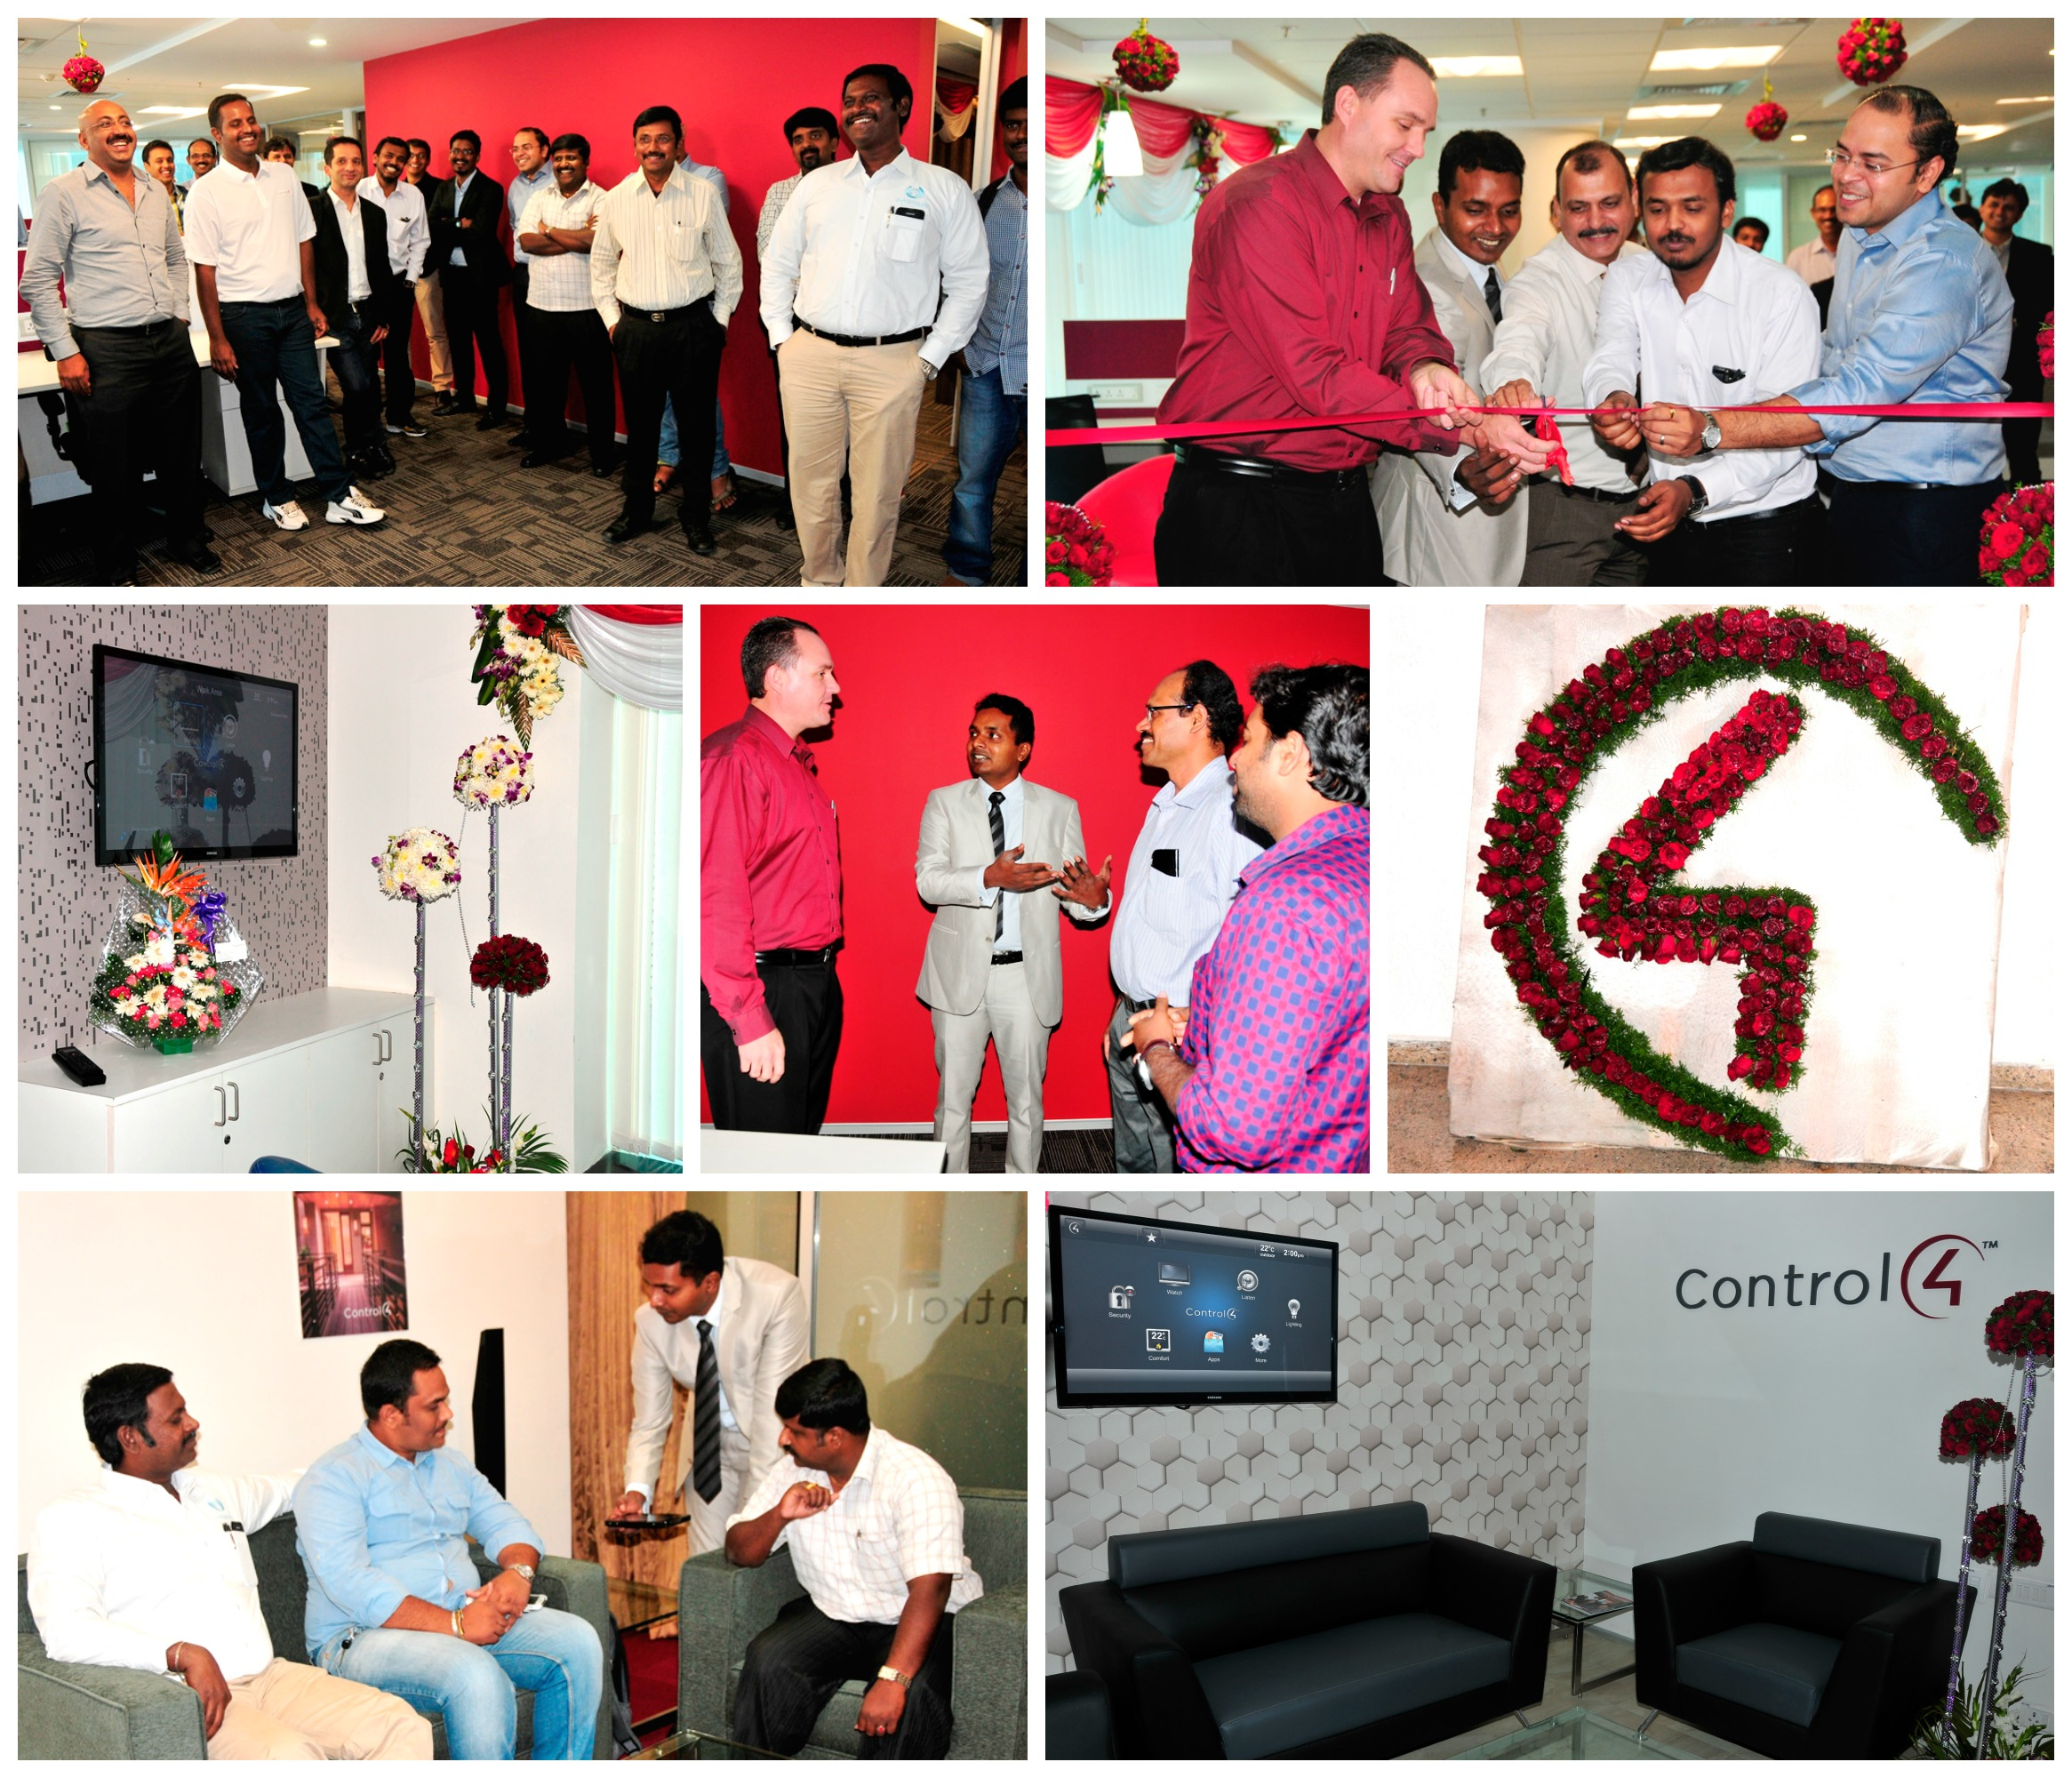 Control4 Home Automation in India